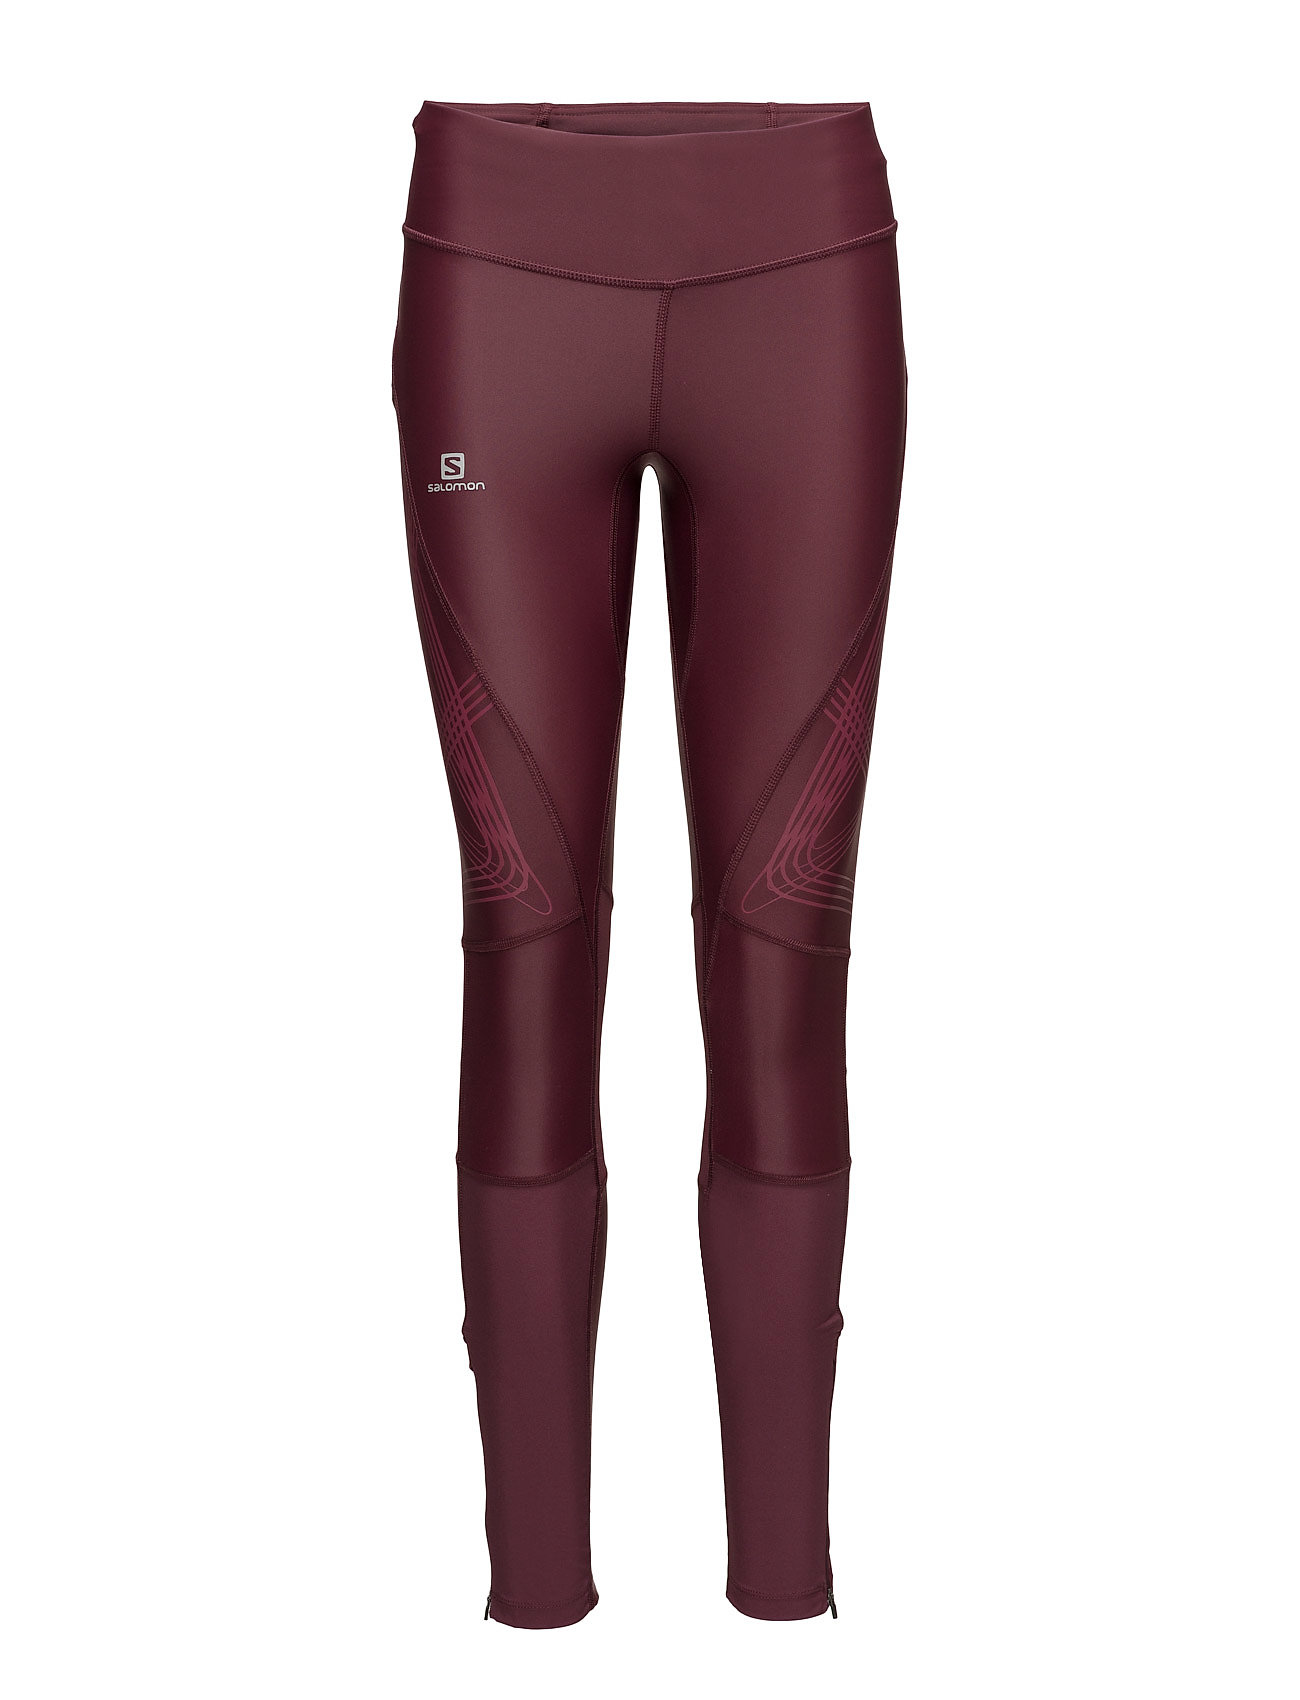 salomon – Intensity long tight w fra boozt.com dk